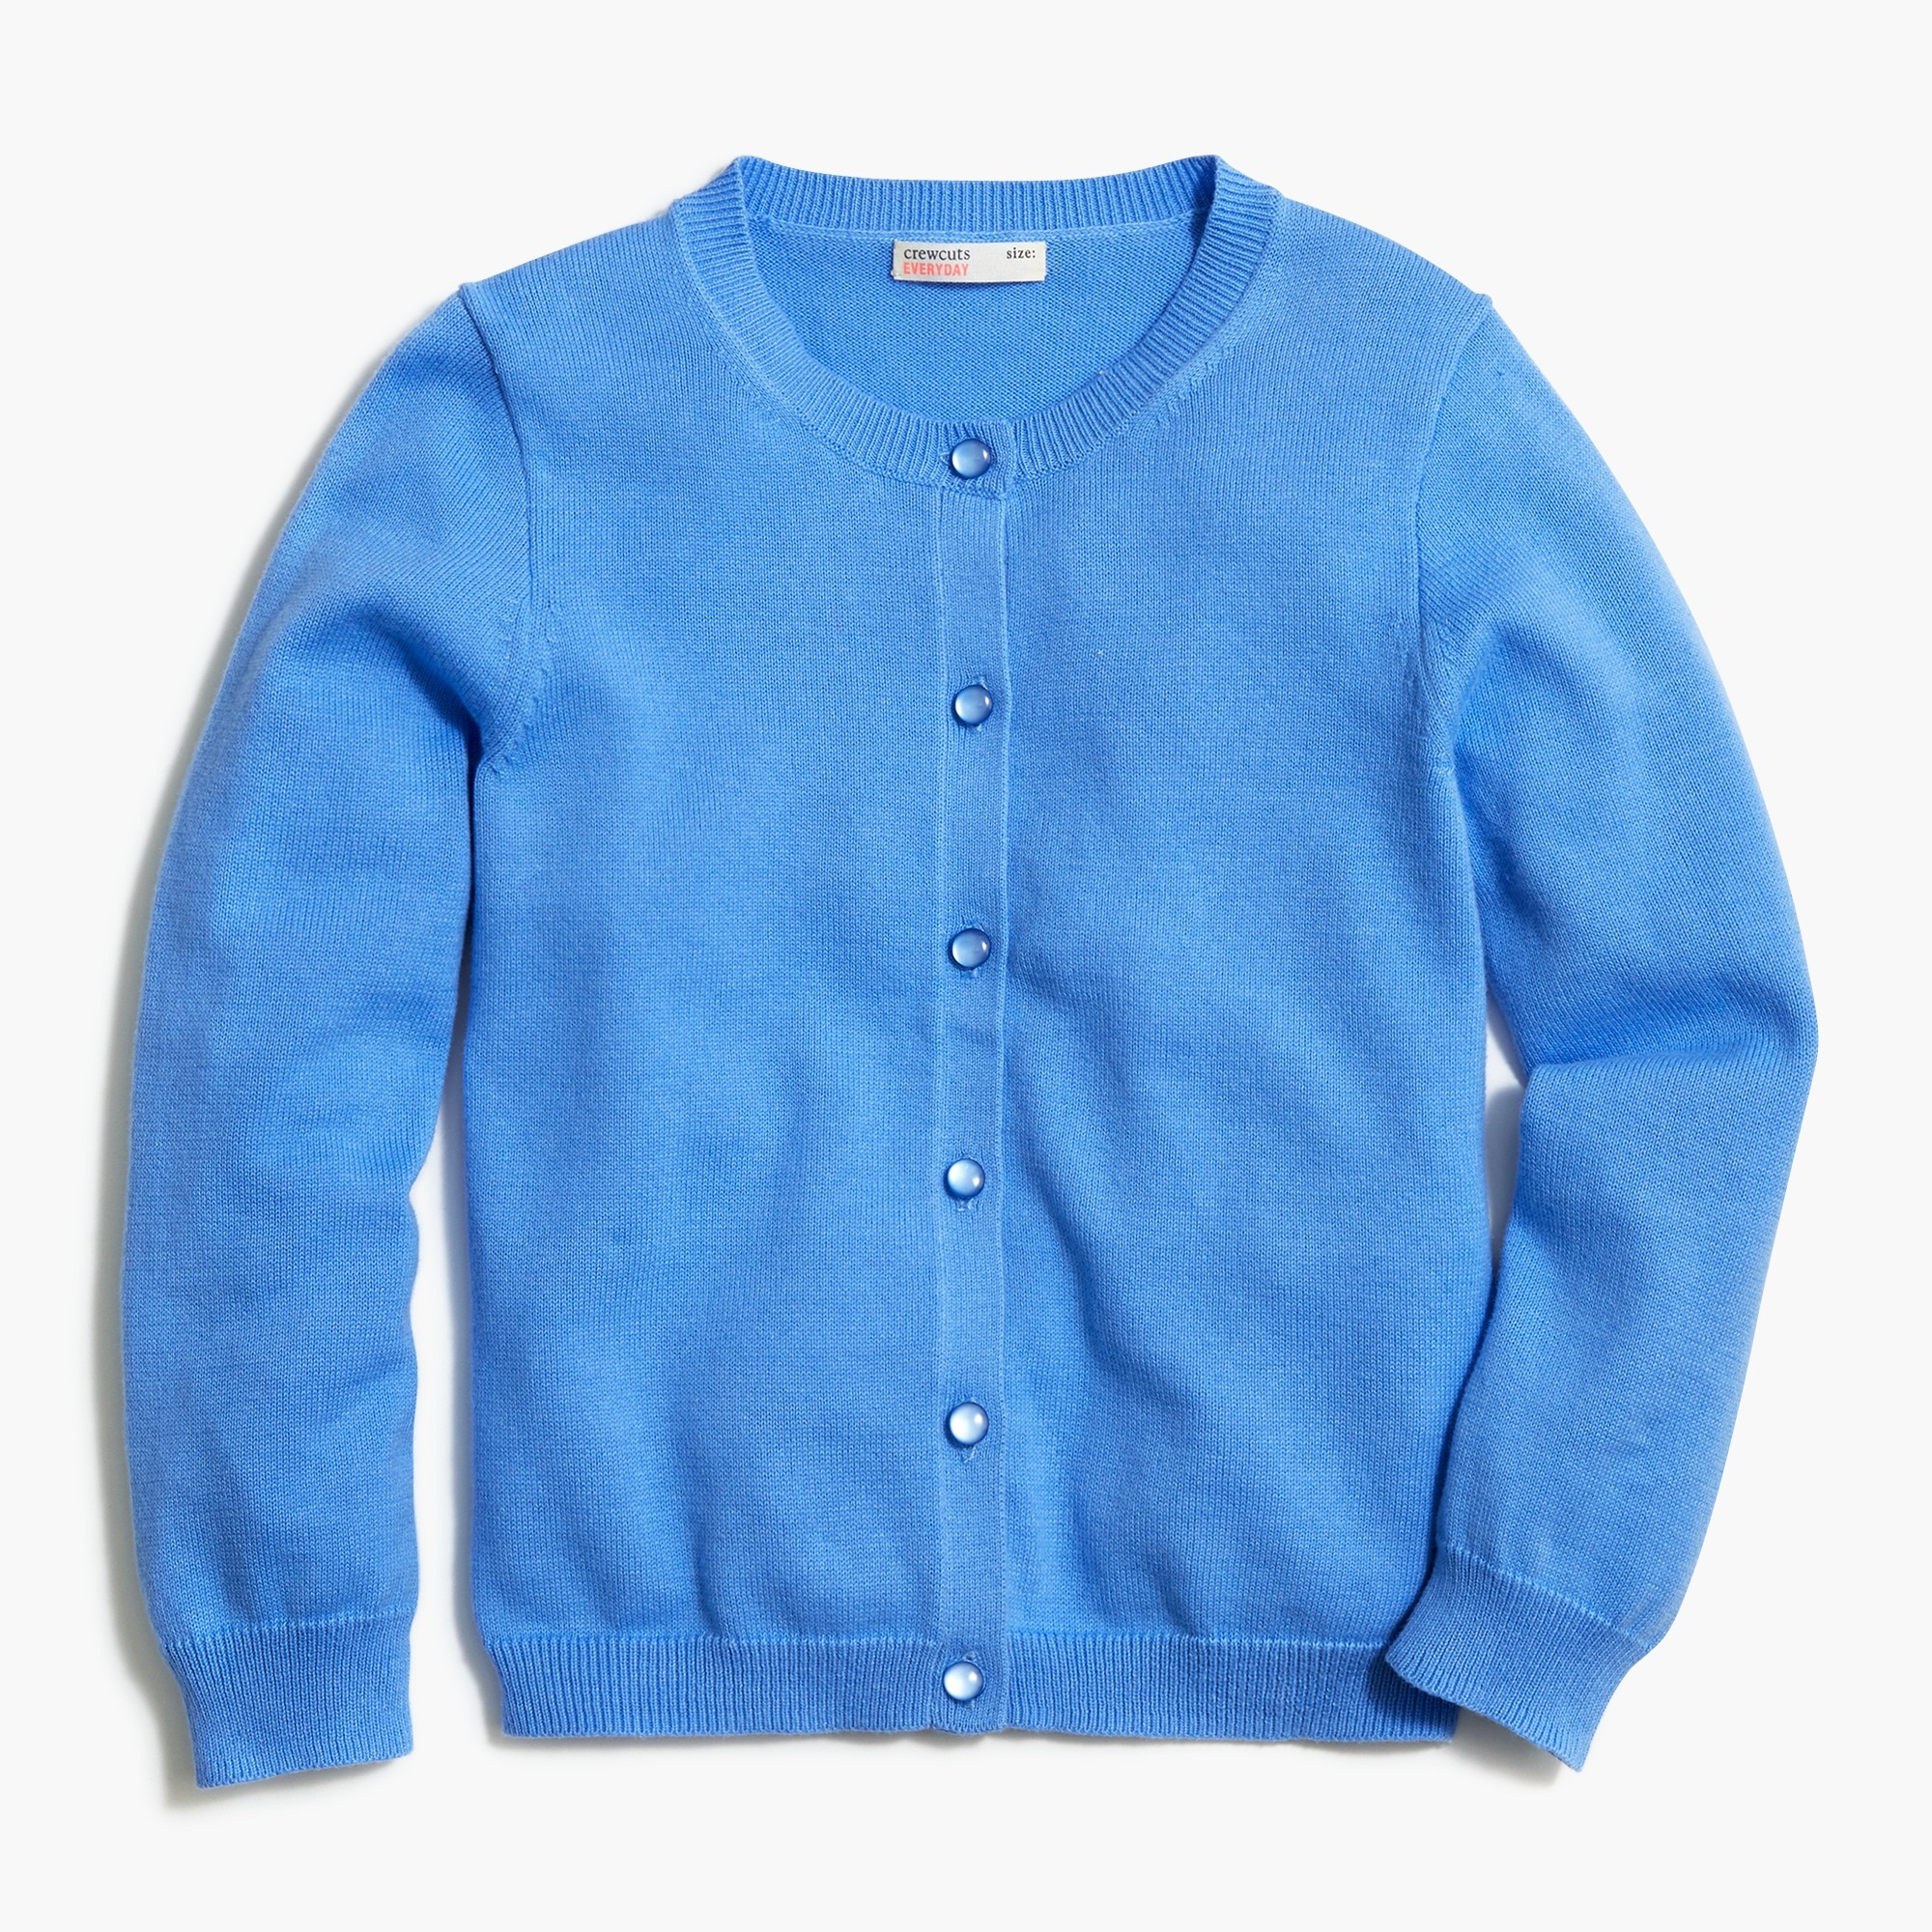 factory girls Girls' Casey cardigan sweater